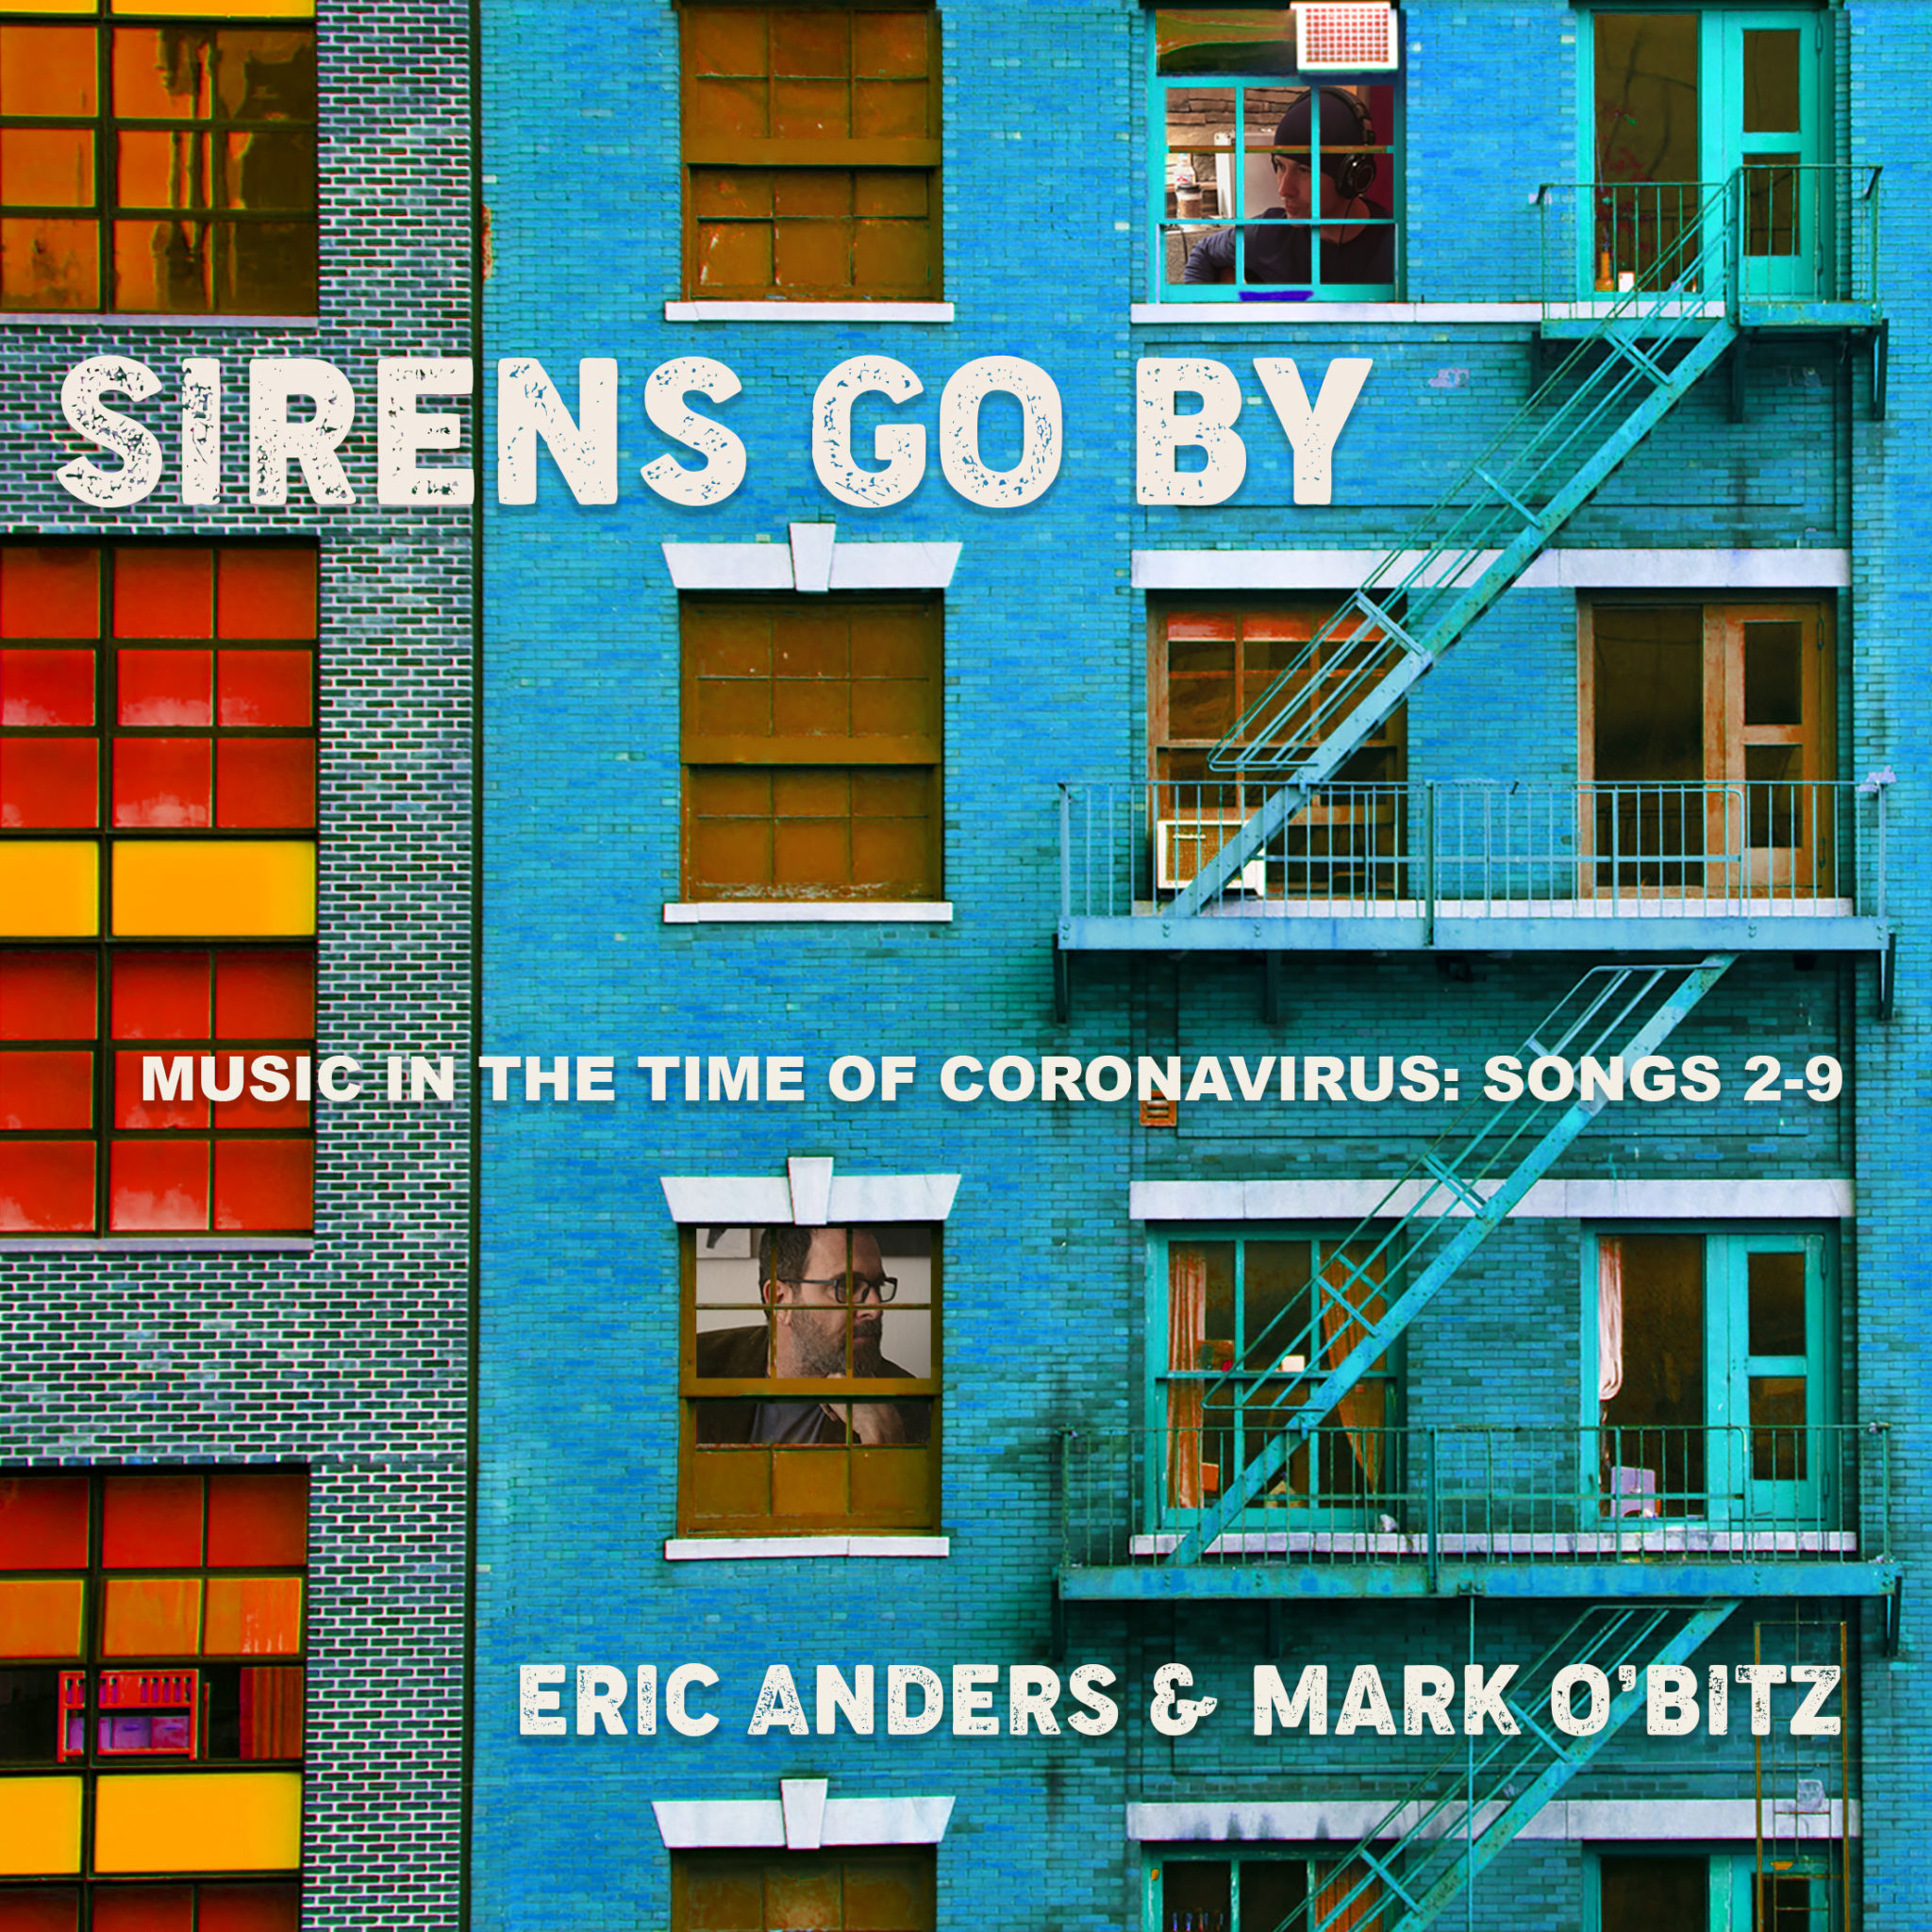 Eric Anders and Mark O'Bitz - 'Sirens Go By' Reaction | Opinions | LIVING LIFE FEARLESS